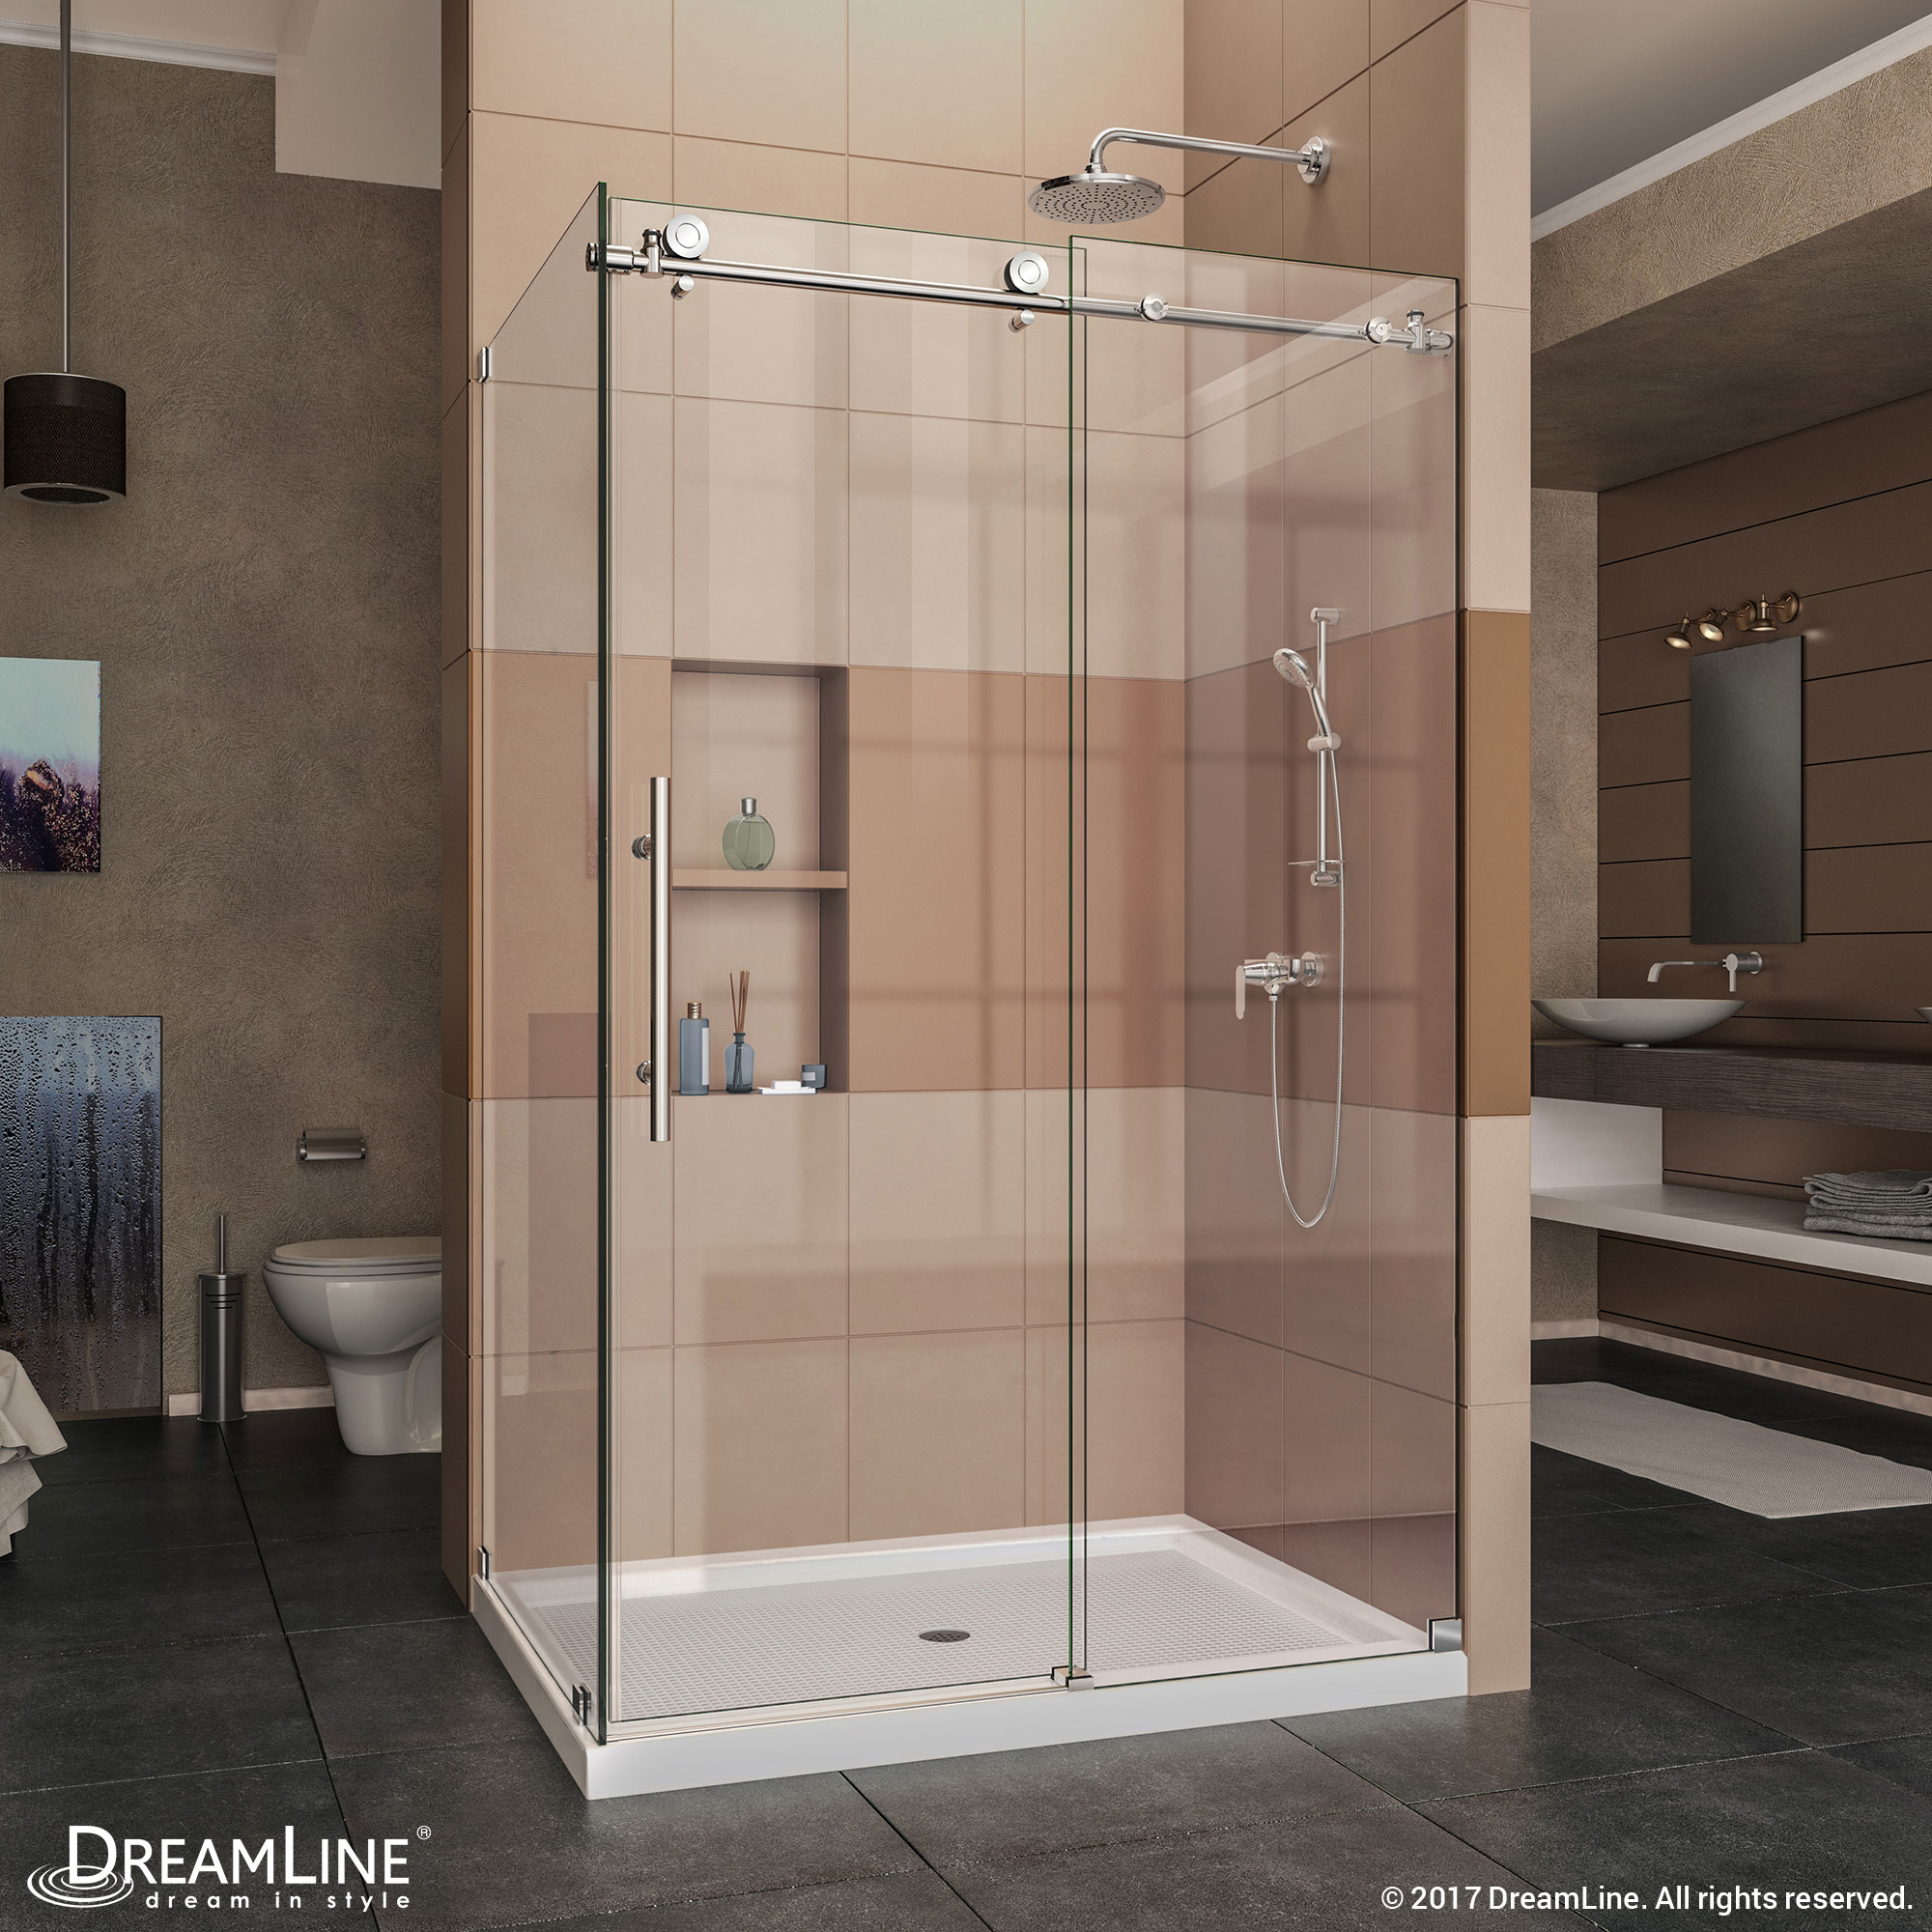 "Enigma-X 34-1/2"" x 48-3/8"" Fully Frameless Sliding Shower Enclosure, Clear 3/8"" Glass, Brushed Stainless Steel"